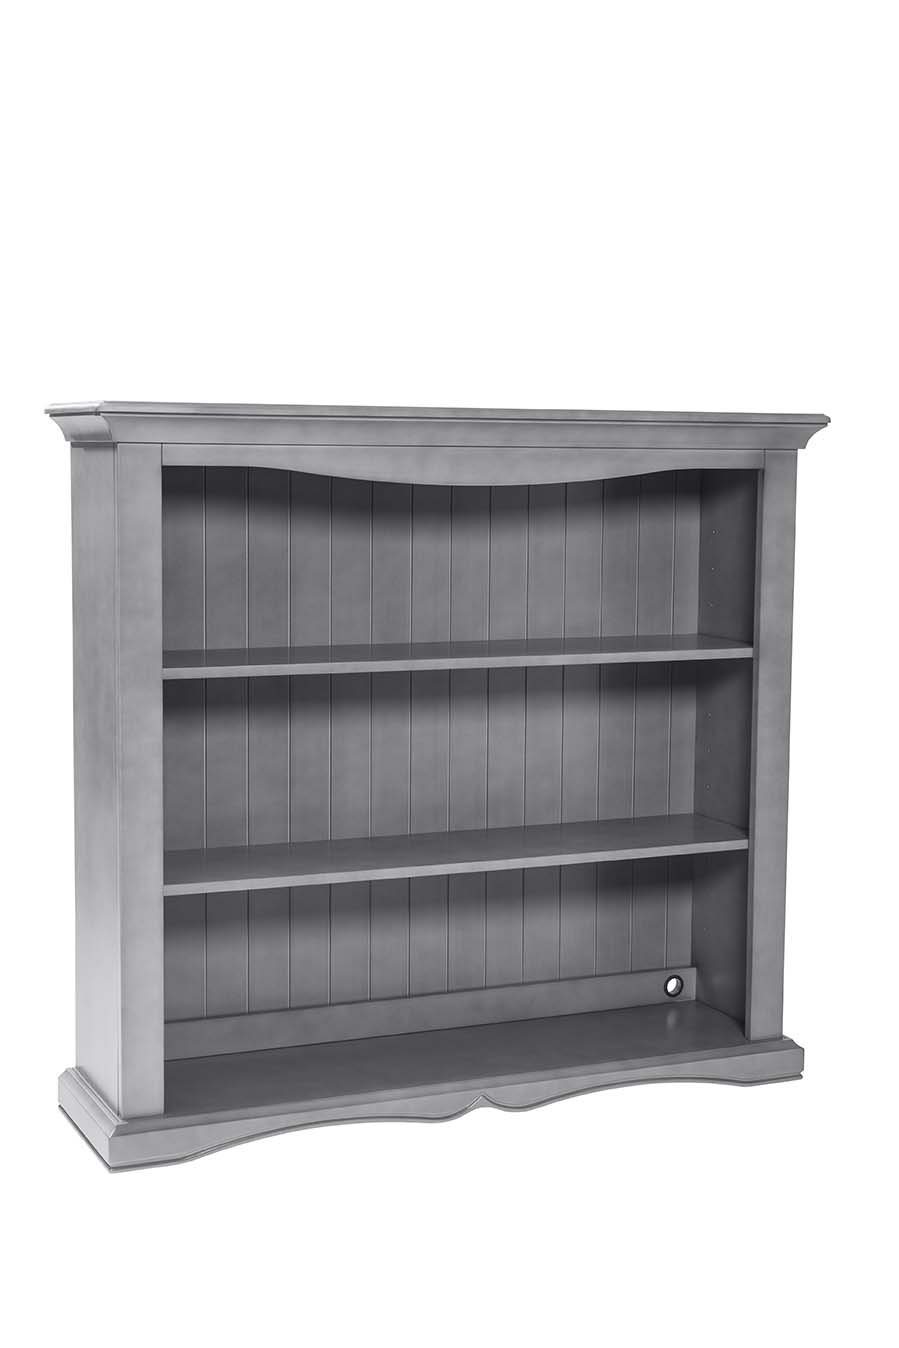 Westwood Design Meadowdale Hutch/Bookcase, Cloud